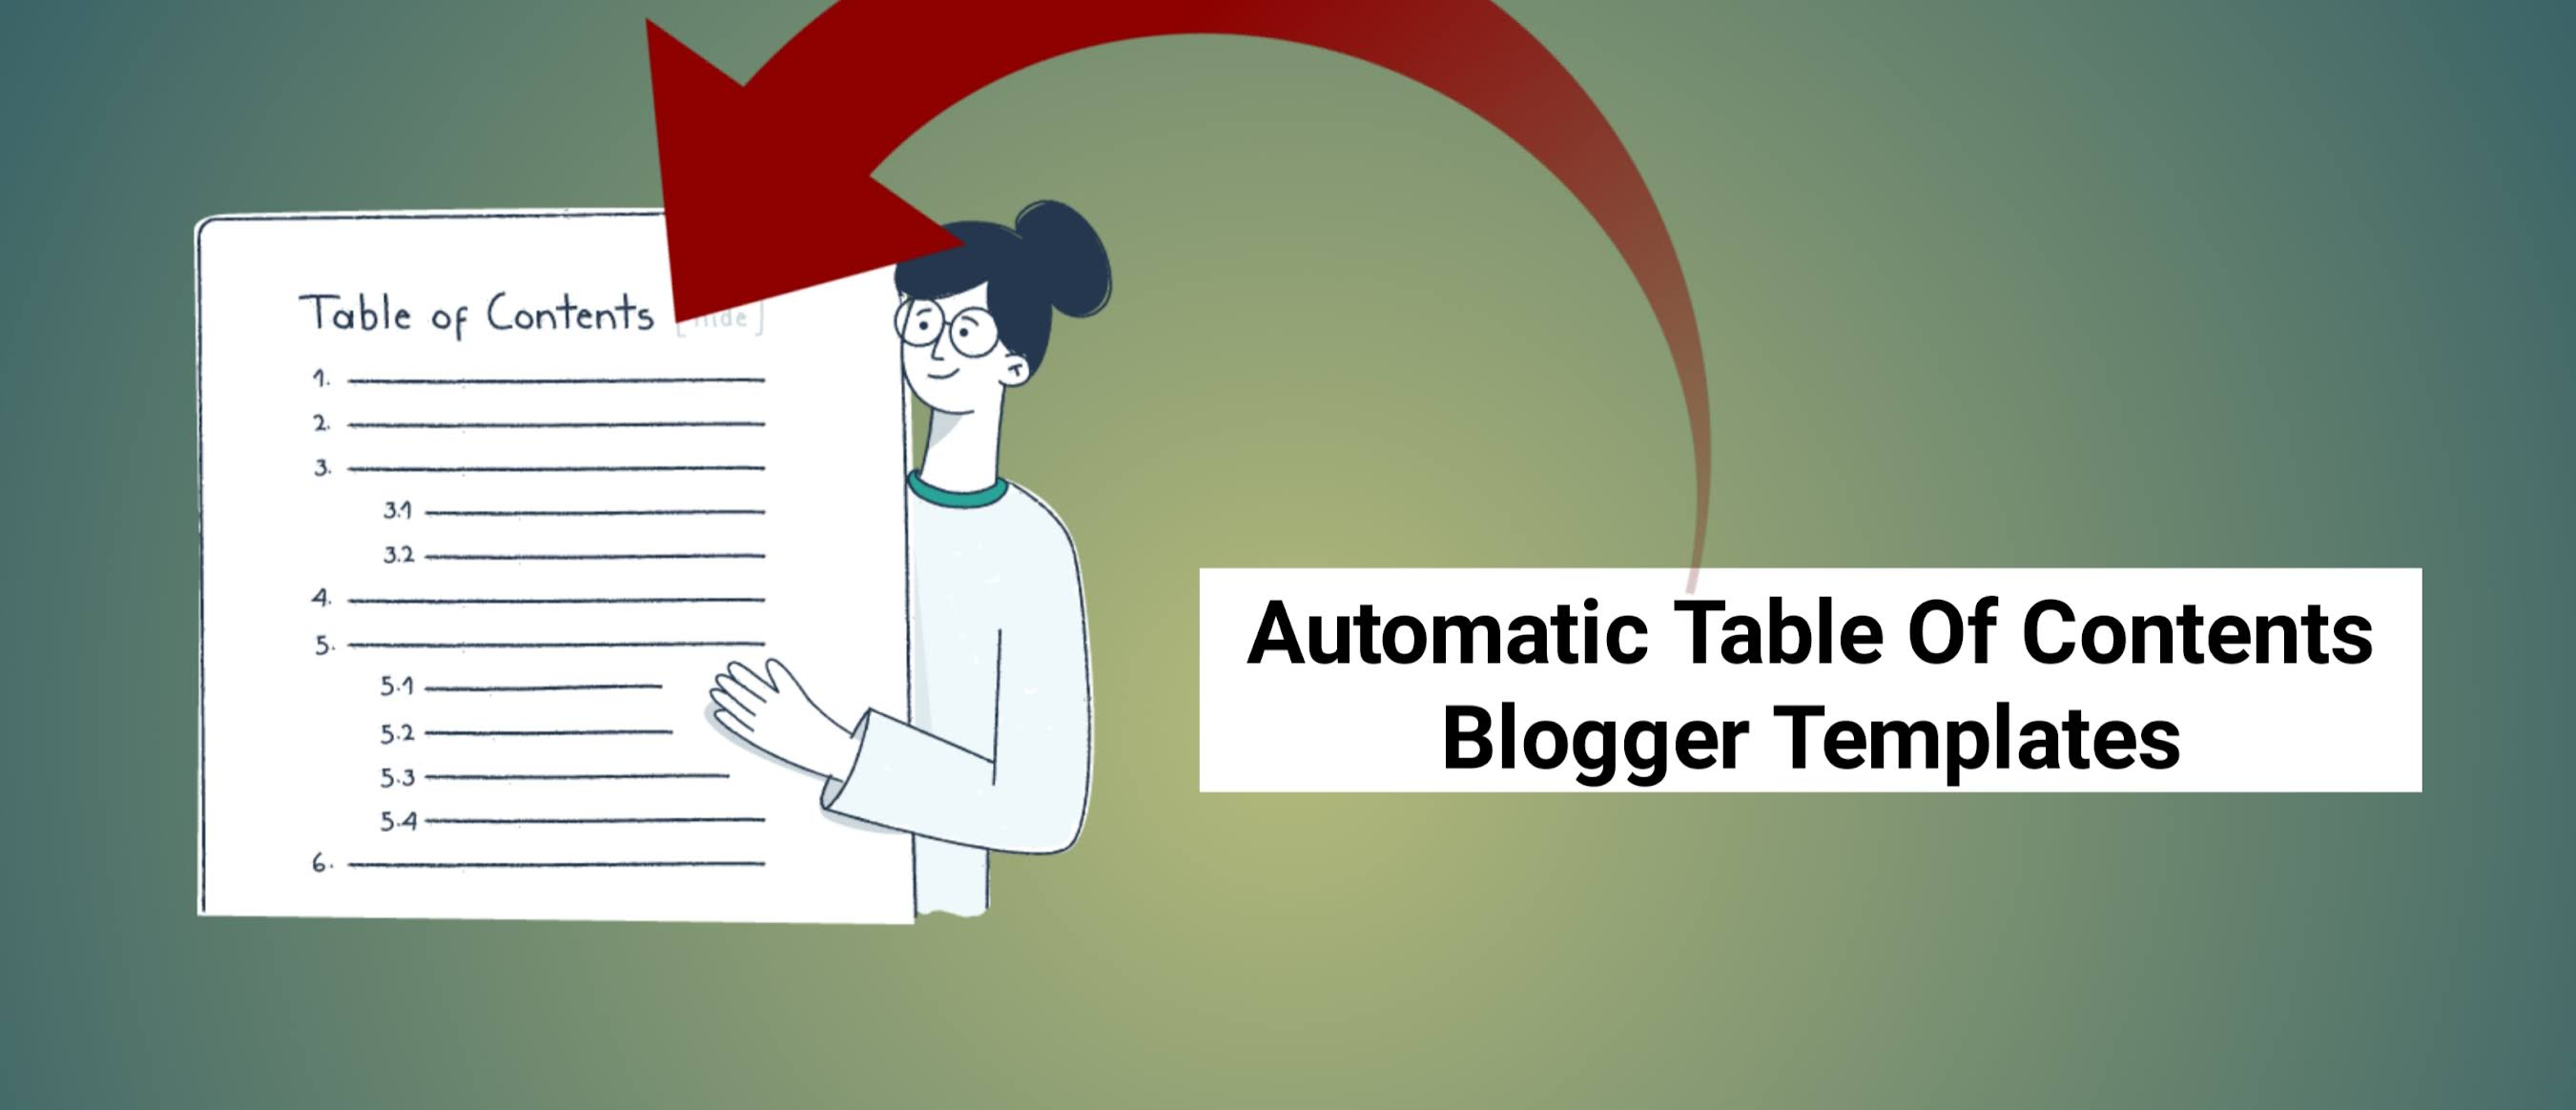 Blogger Templates Come With Automatic Table Of Contents